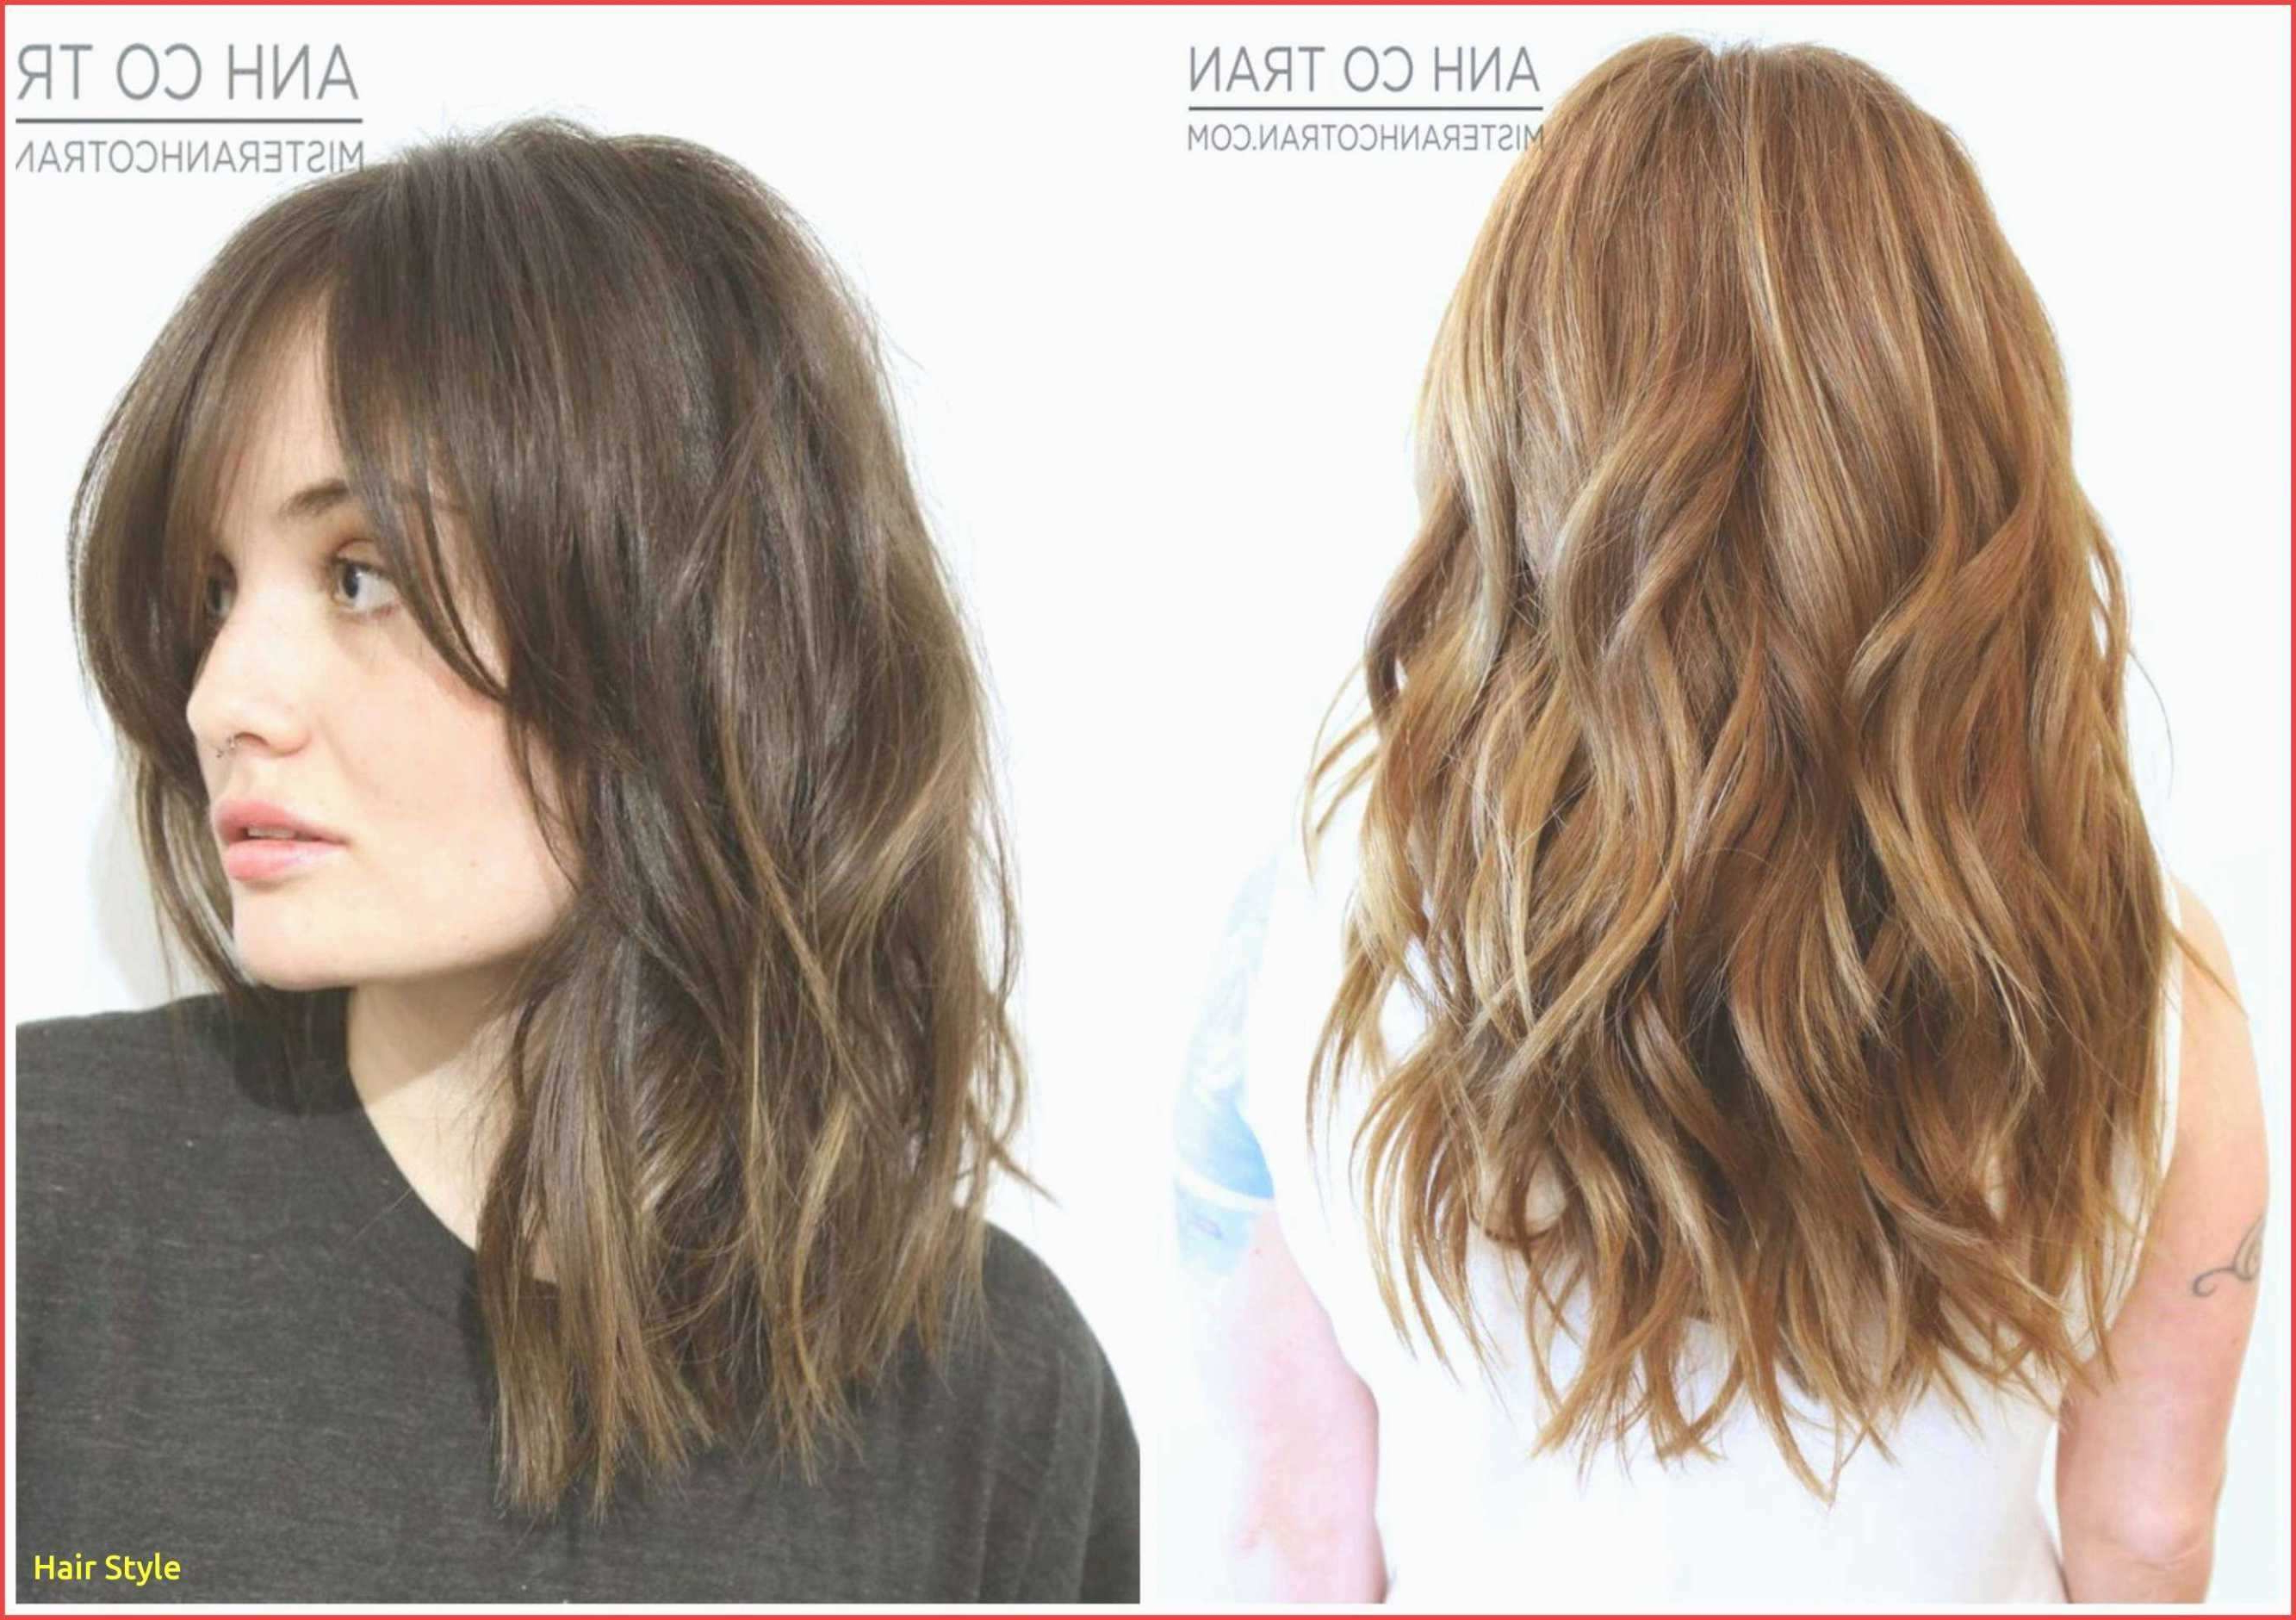 Medium Length Korean Hairstyle With Bangs – Medium Hairstyles In Well Liked Medium Length Bob Asian Hairstyles With Long Bangs (View 12 of 20)